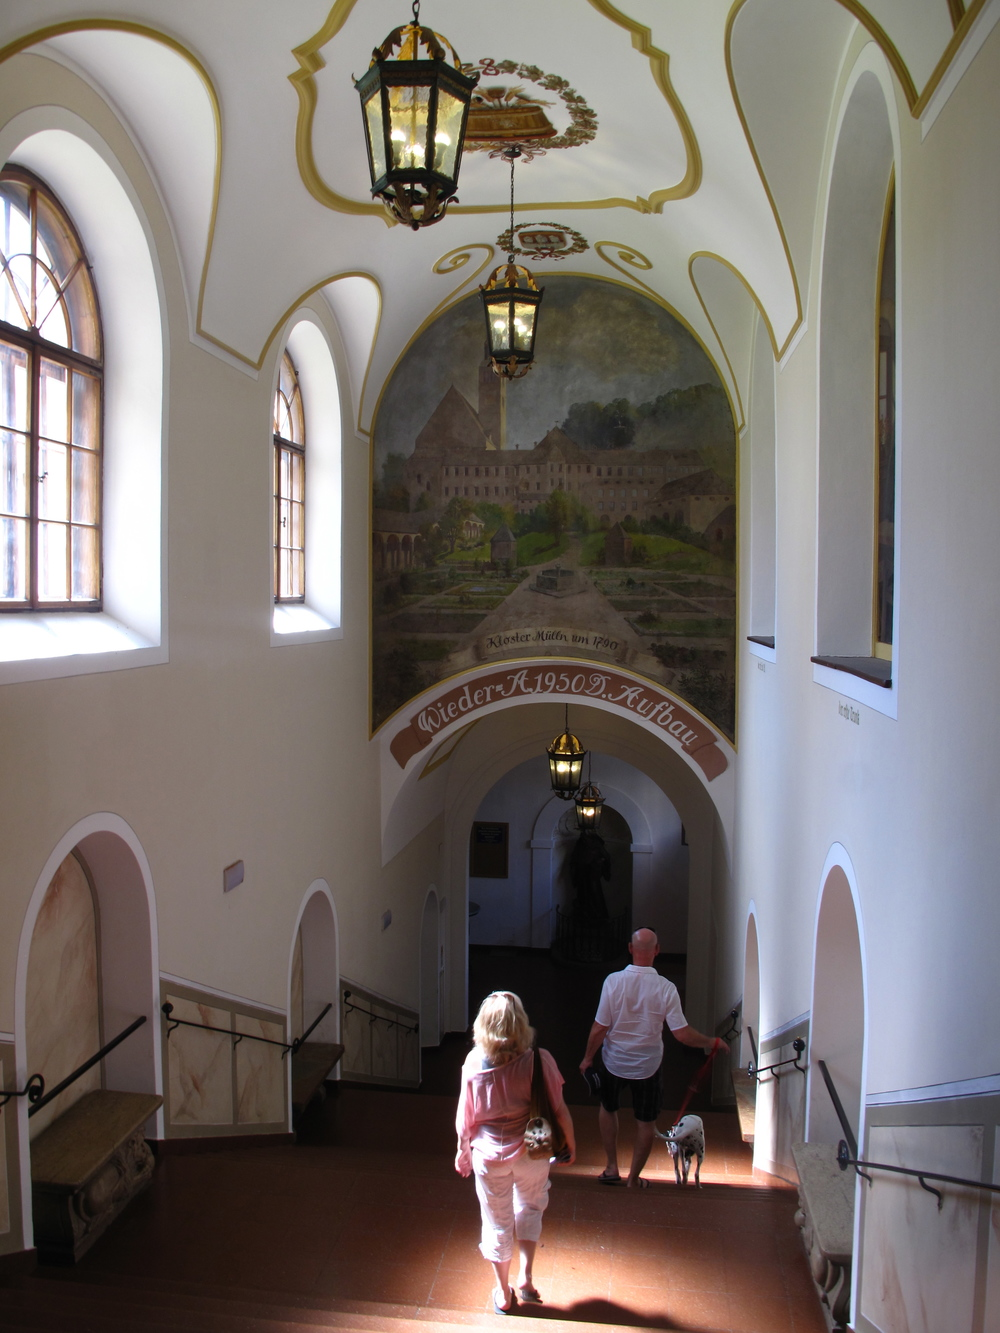 Inside the monastery of the Augustiner Beer Garden, Salzburg.